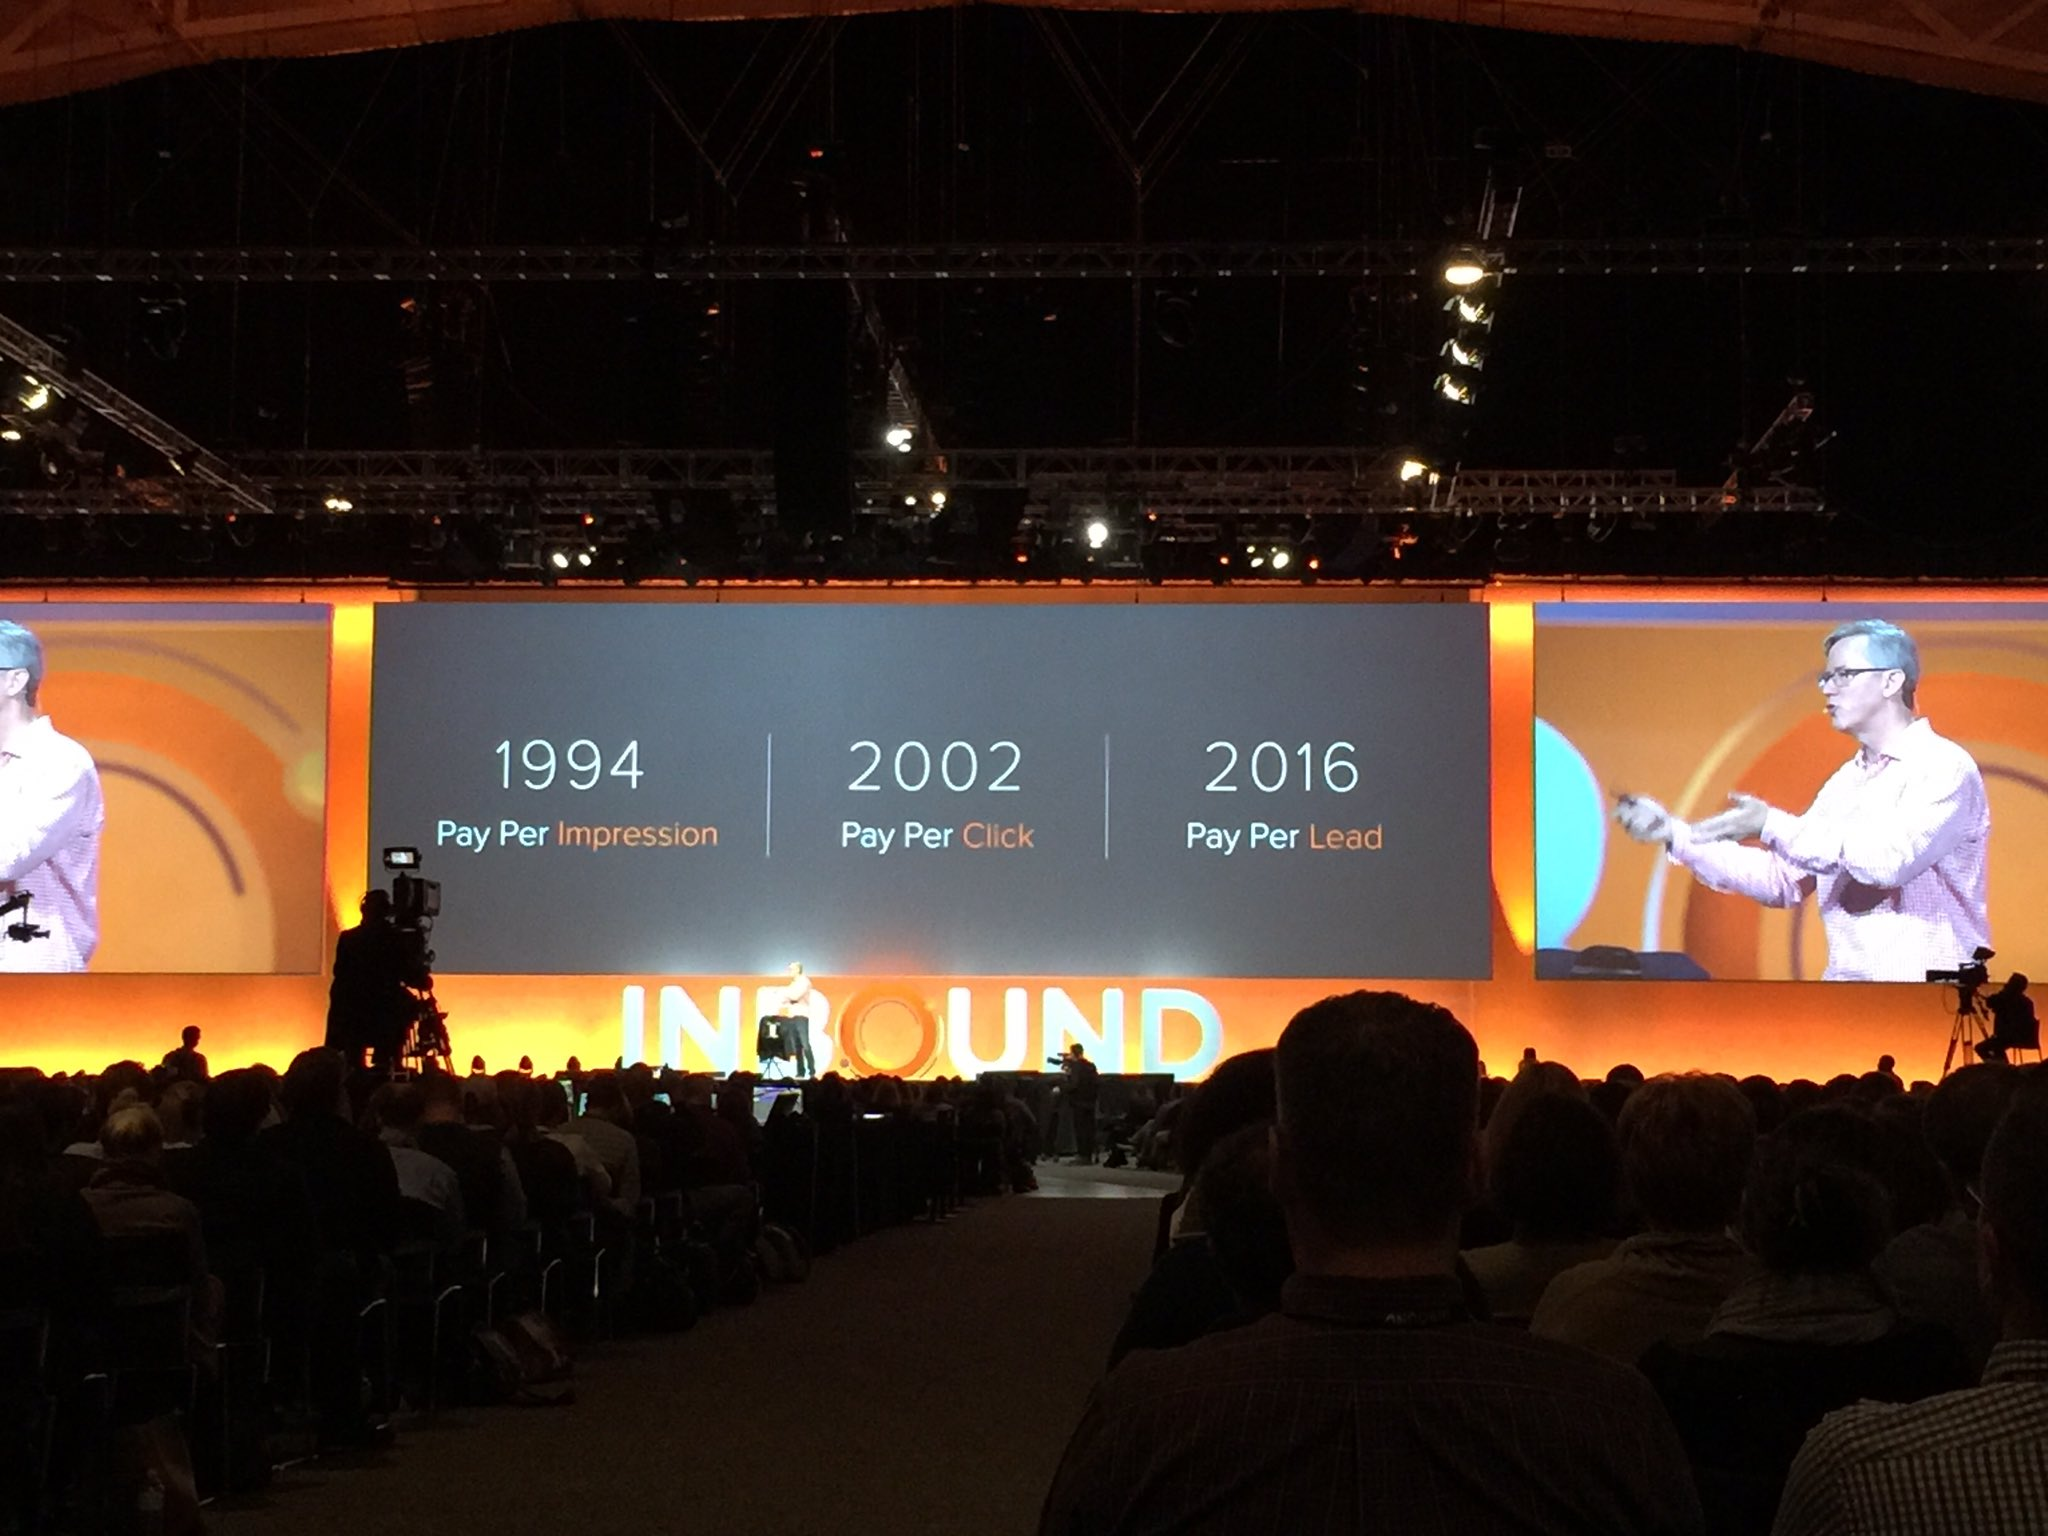 Pay per lead is the new pay per click. This is Zuckerberg's world. @bhalligan #INBOUND16 https://t.co/C11smwFRga